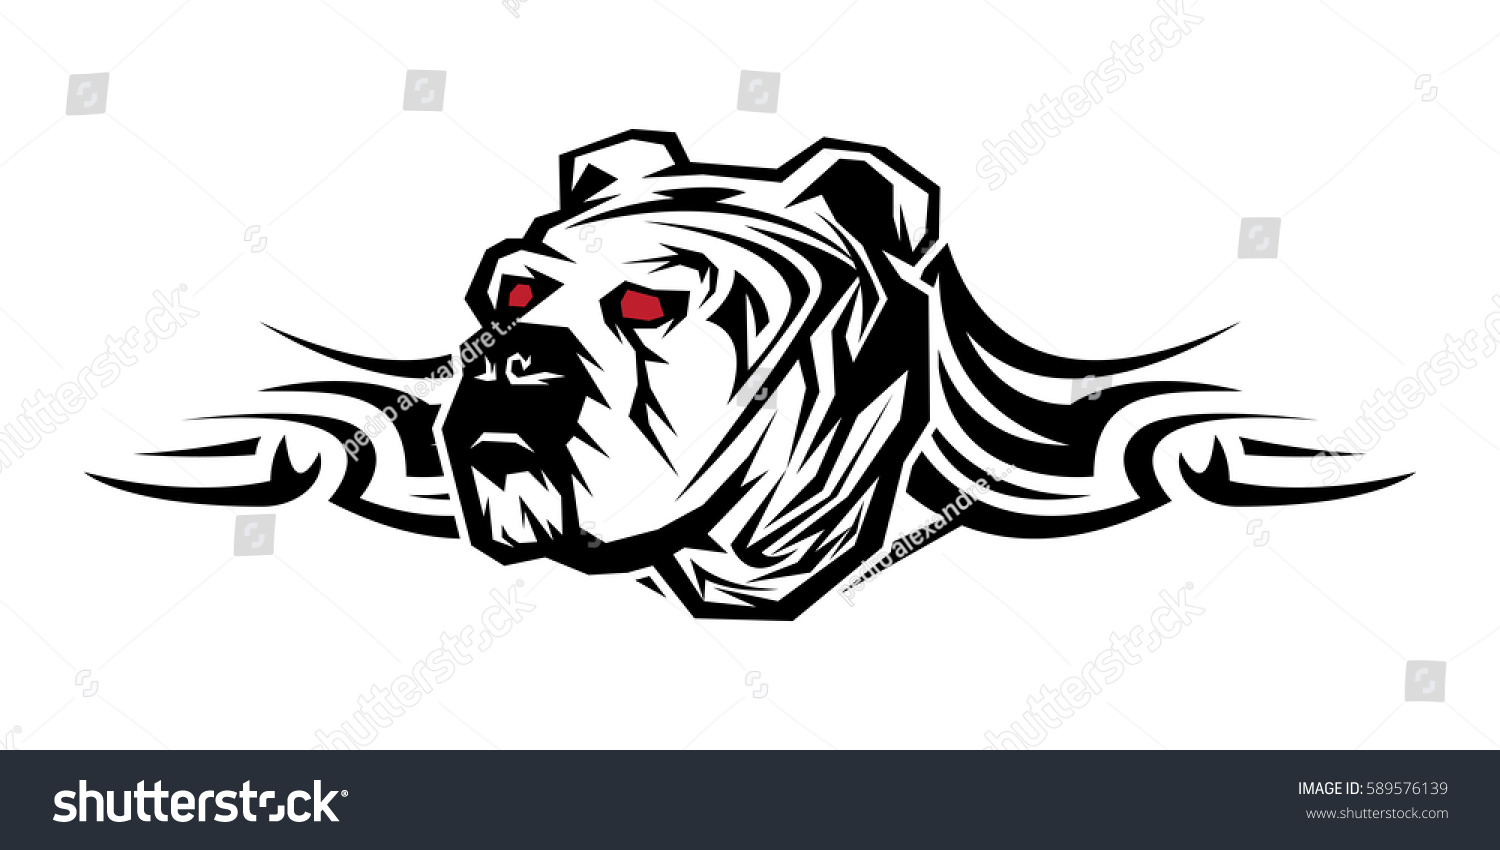 Tribal decorative artistic powerful strength bulldog stock vector tribal decorative artistic powerful strength bulldog tattoo urban ghetto emblem sciox Images